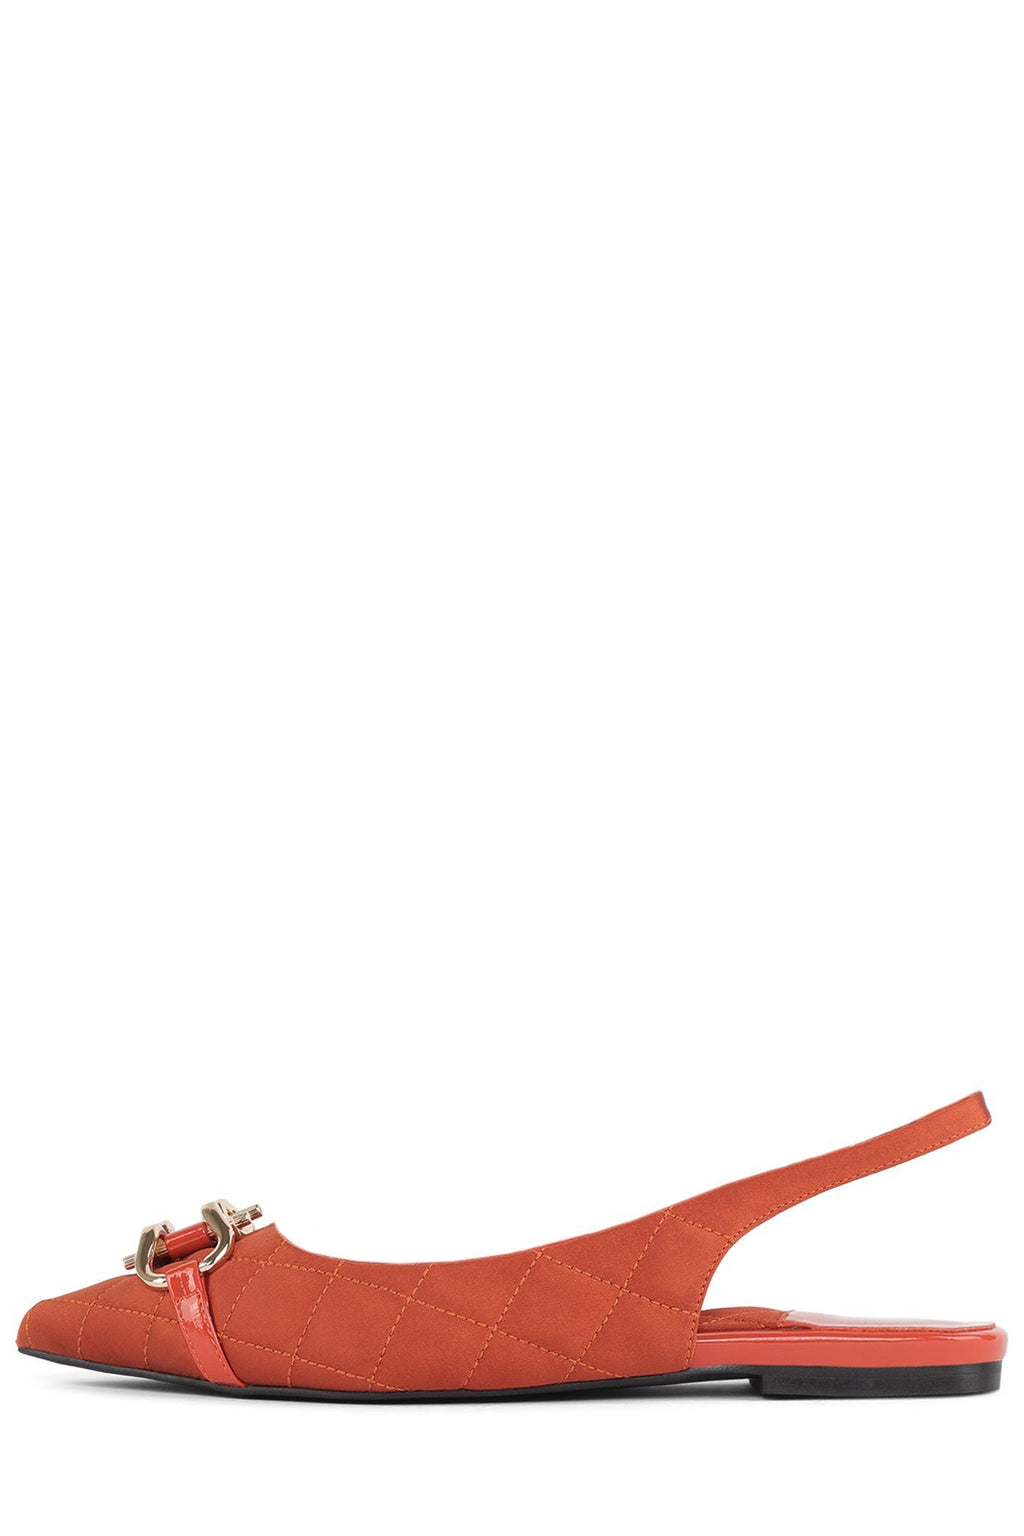 LENORA-QB Flat DV Orange Satin 6